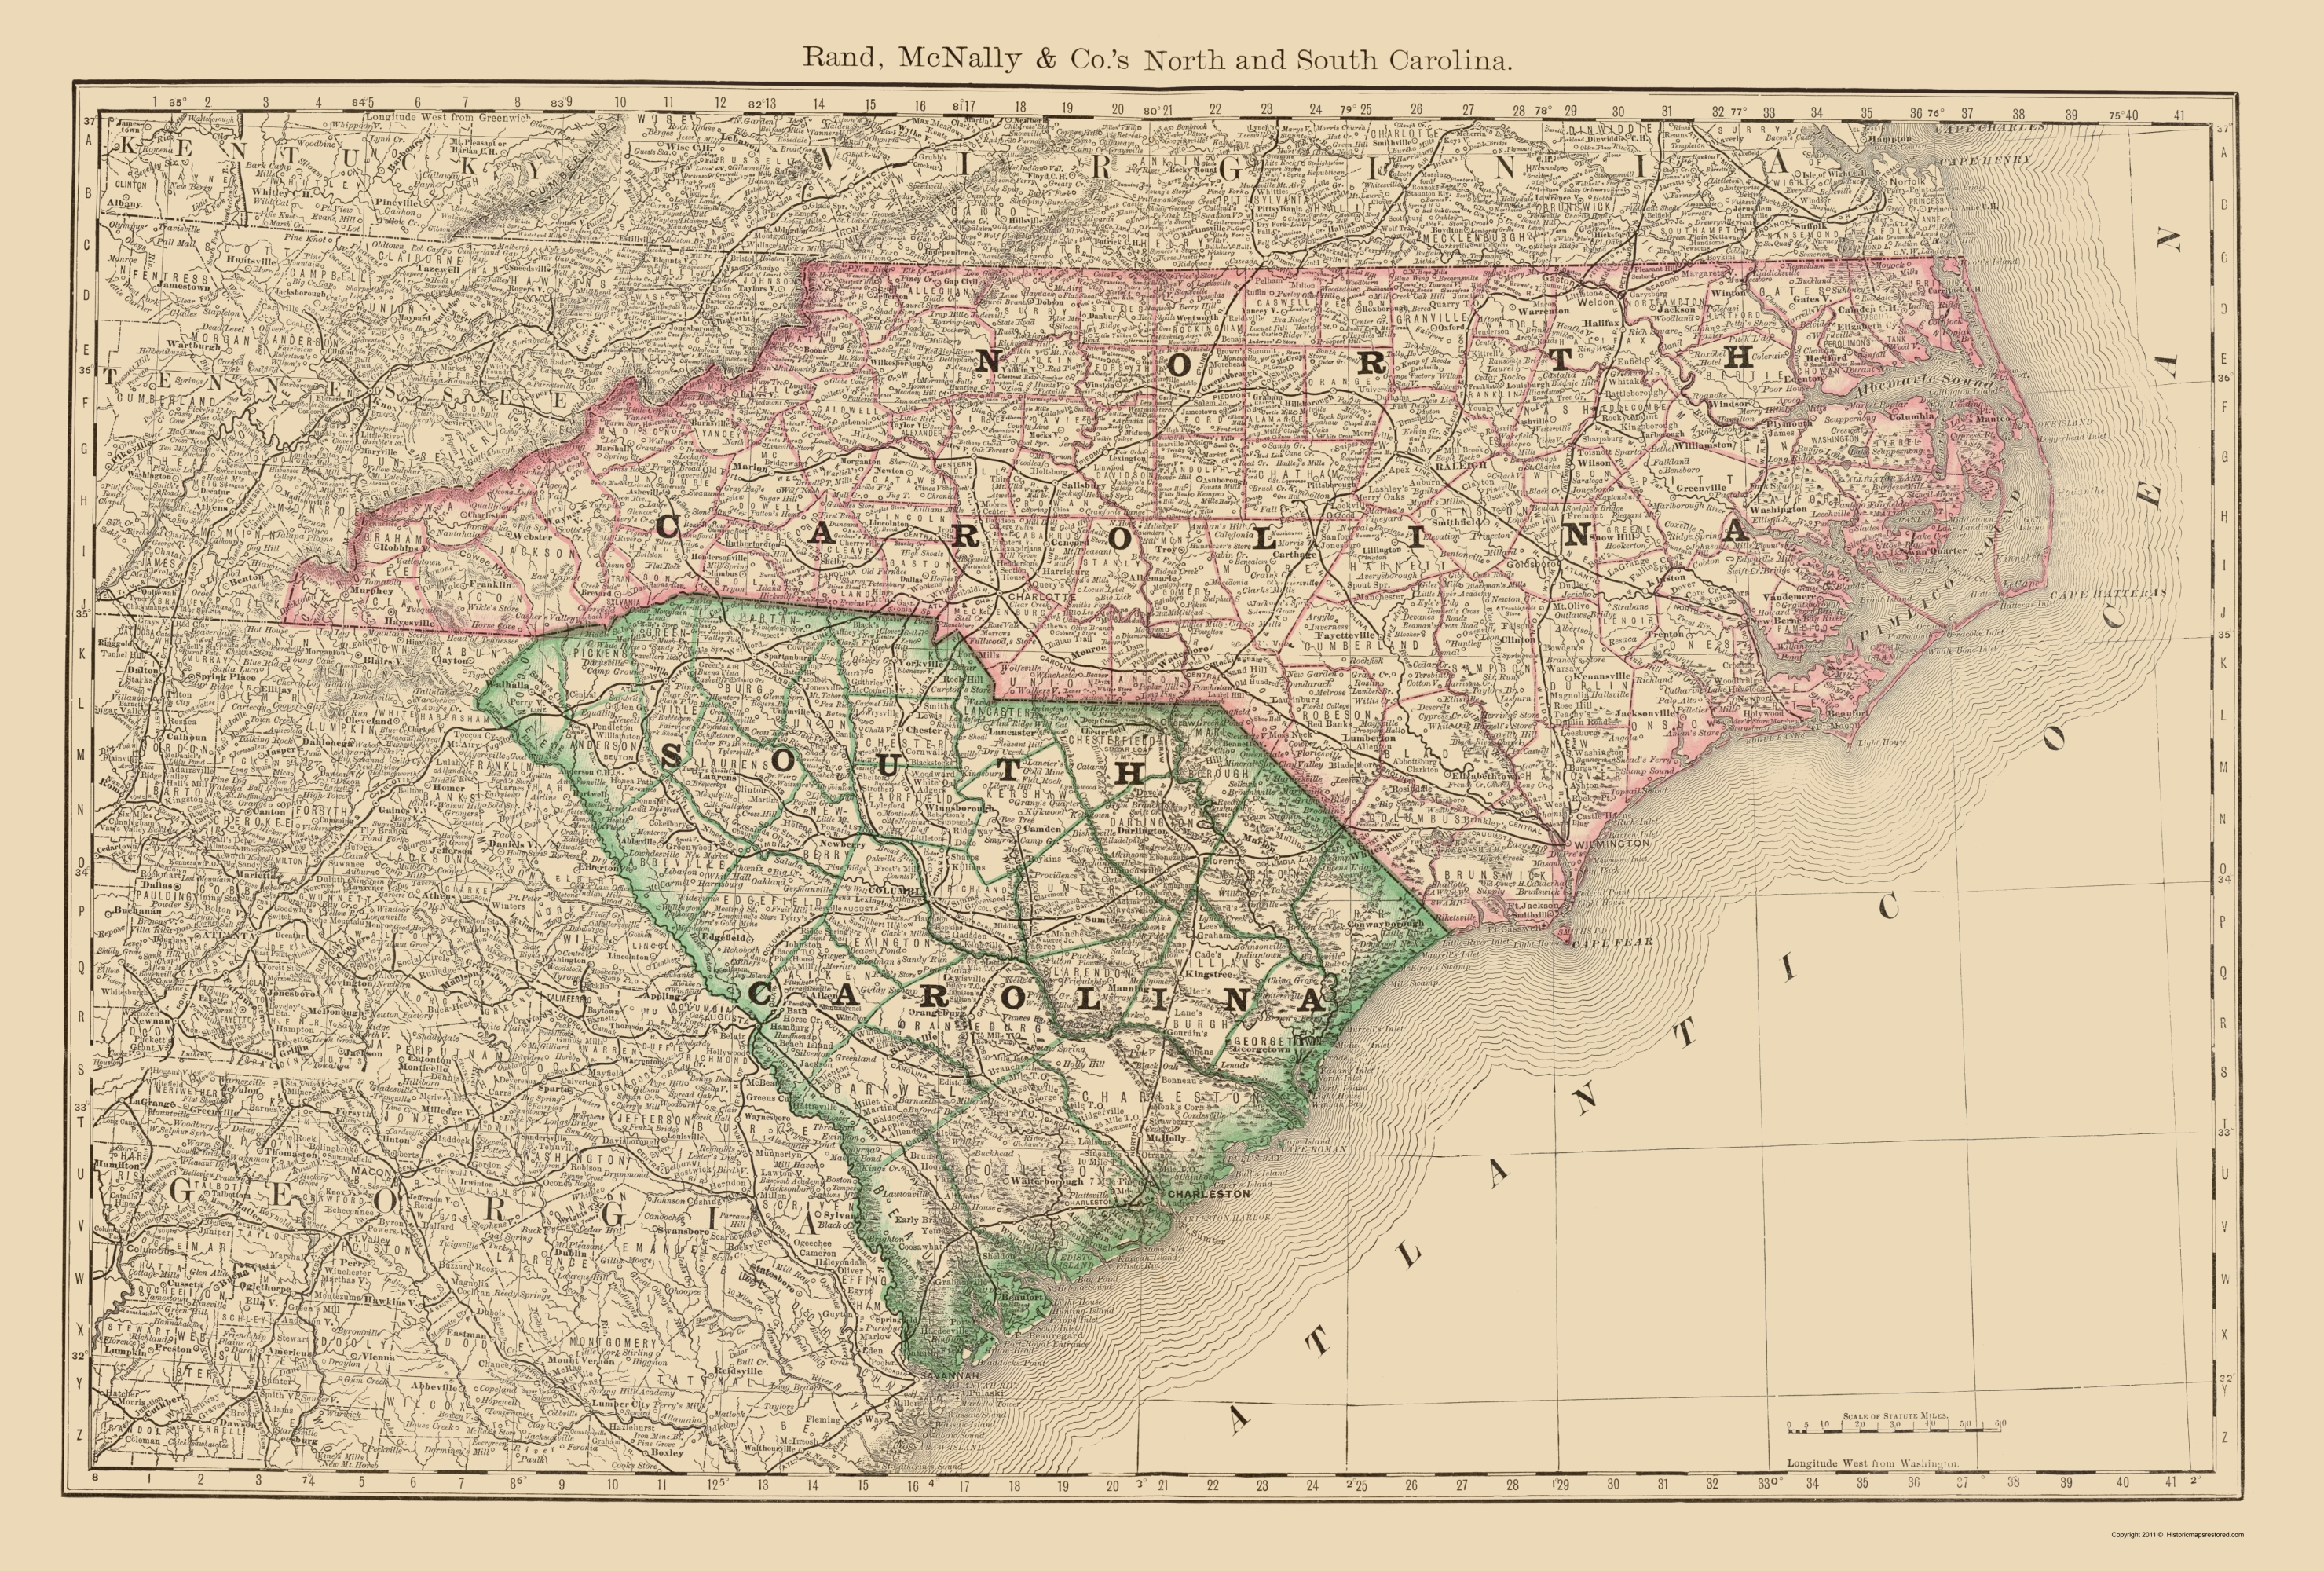 Old State Map - North Carolina, South Carolina - Rand McNally 1879 - 23 x  34.03